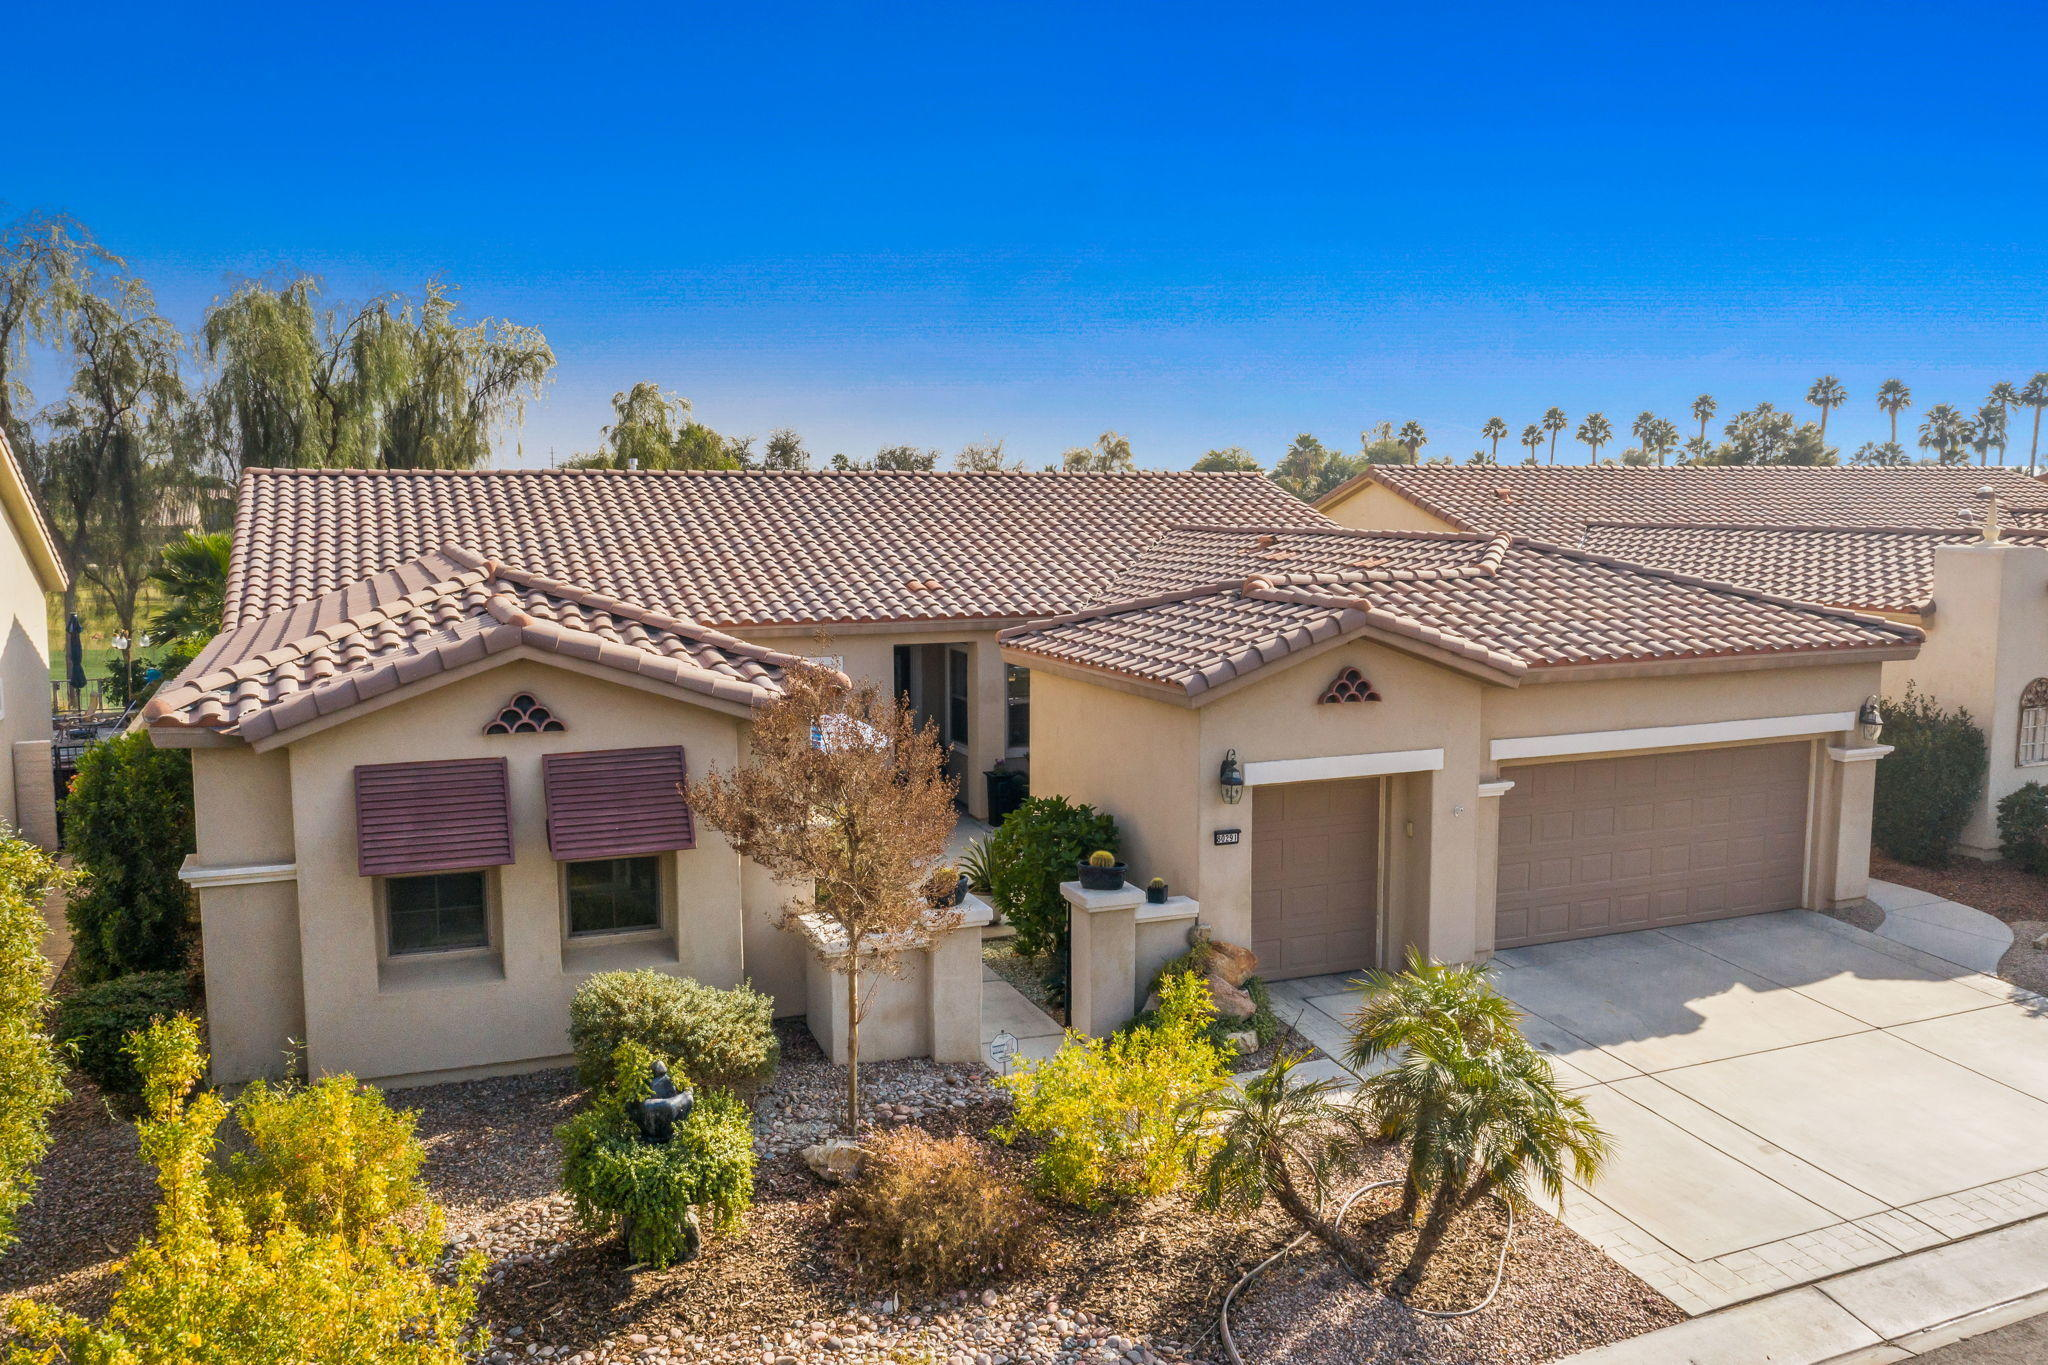 Rare Opportunity at Sun City Shadow Hills! This updated San Miguel has a one-of-a-kind modified floor plan. Removing 1 wall opened up + united the living areas making one of the most stunning great rooms you'll find! Your eye will catch all the fresh designer details incl. new floor-to-ceiling stacked limestone accent wall, new flooring, paint + window coverings. Updated gourmet kitchen w/ new gas appliances, stainless farm sink, faucet + hood. Refinished cabinetry, slab granite countertops, island + breakfast bar + eating area ideal for entertaining. Virtually NEW pool (2 years old) complete w/ waterfall + sunken tanning deck, perfect for enjoying the sunshine and gorgeous golf course + mountain views. Live like you're on vacation every day in the spacious Owner's Suite! Luxurious 5 piece bathroom w/ jetted tub + massive walk-in closet, golf course views + direct access to partially covered rear patio + pool area. A long travertine tiled hallway leads you to the separate Guest Suite featuring a private exterior entrance + full bathroom. Other features include: Den/Office, courtyard patio, 2 car garage + golf car bay, 1/2 bathroom for guests and laundry room. Ideal Phase1 location near the main entrance w/ a prime elevated golf course lot on the 11th fairway of the Shadow Hills South Course. Only 2 blocks from the Shadow's Restaurant (+Bar), the Troon Pro Shop + driving range, 1 block to the dog park. HOA amenities incl. 2 club houses, pools, bocce ball, tennis courts + more!